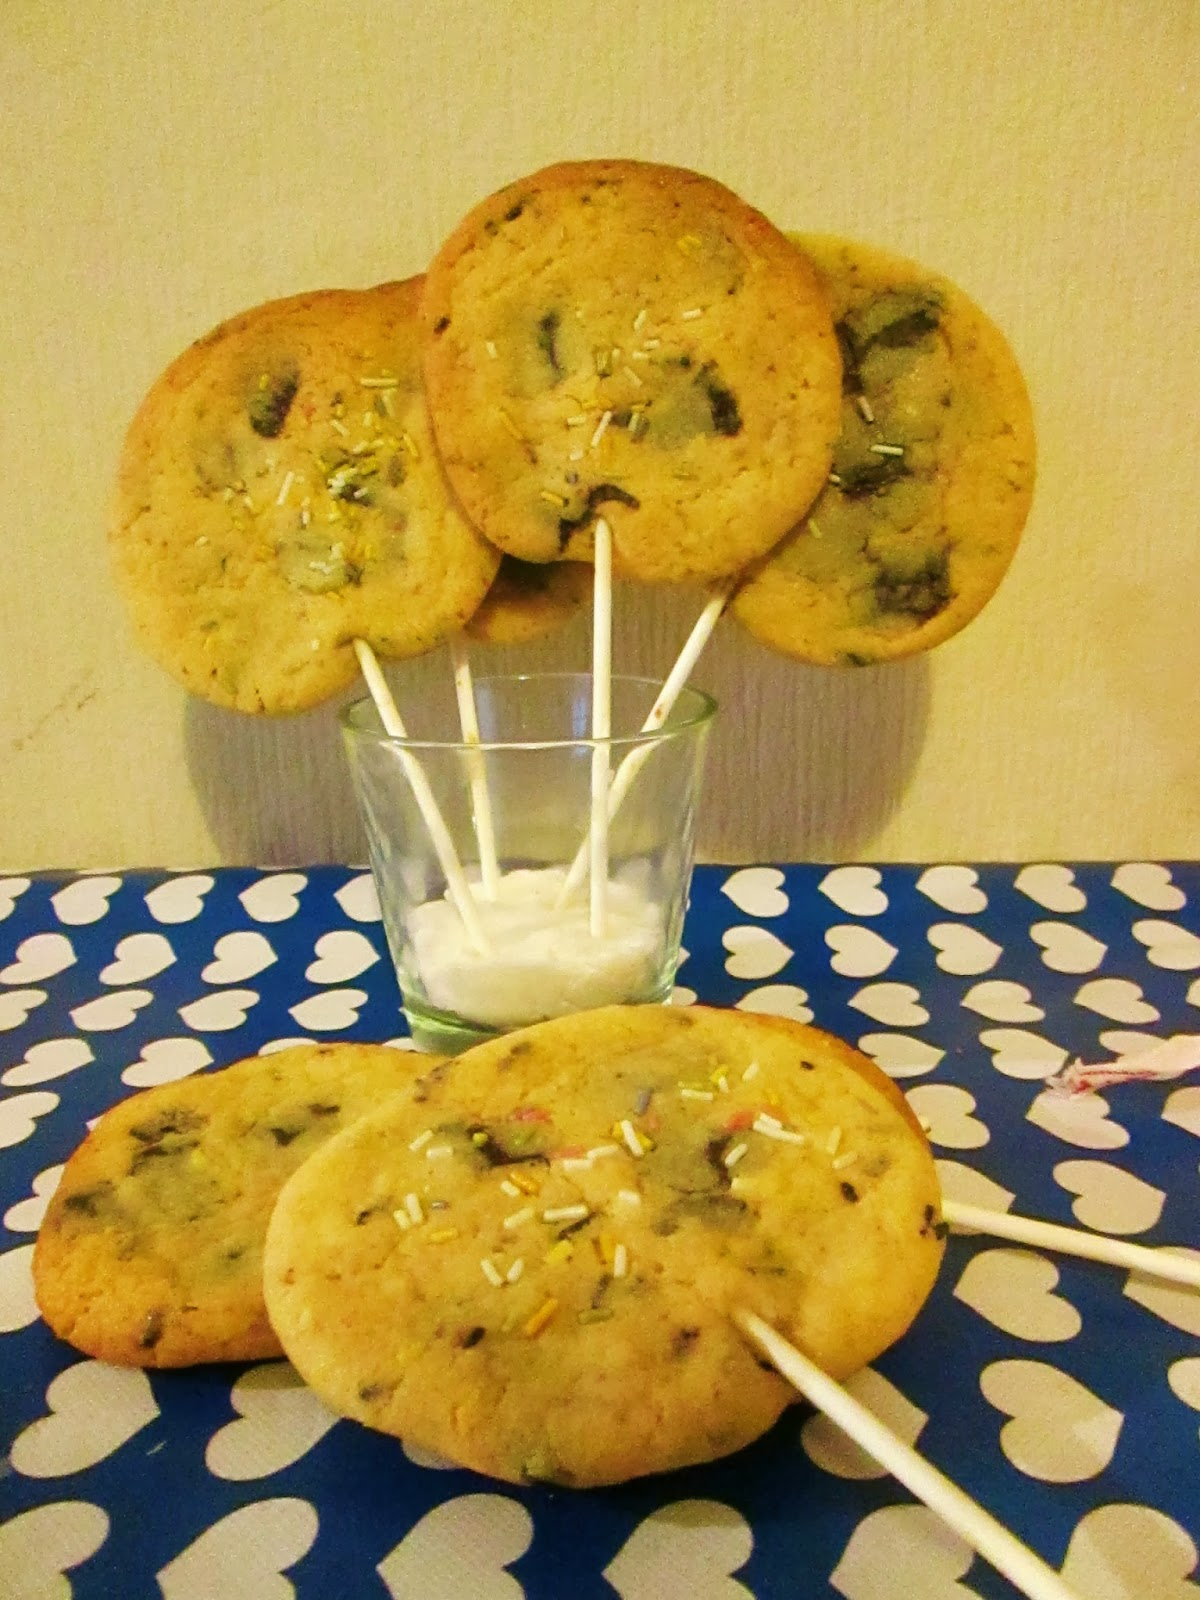 http://themessykitchenuk.blogspot.co.uk/2013/11/cookie-pops.html